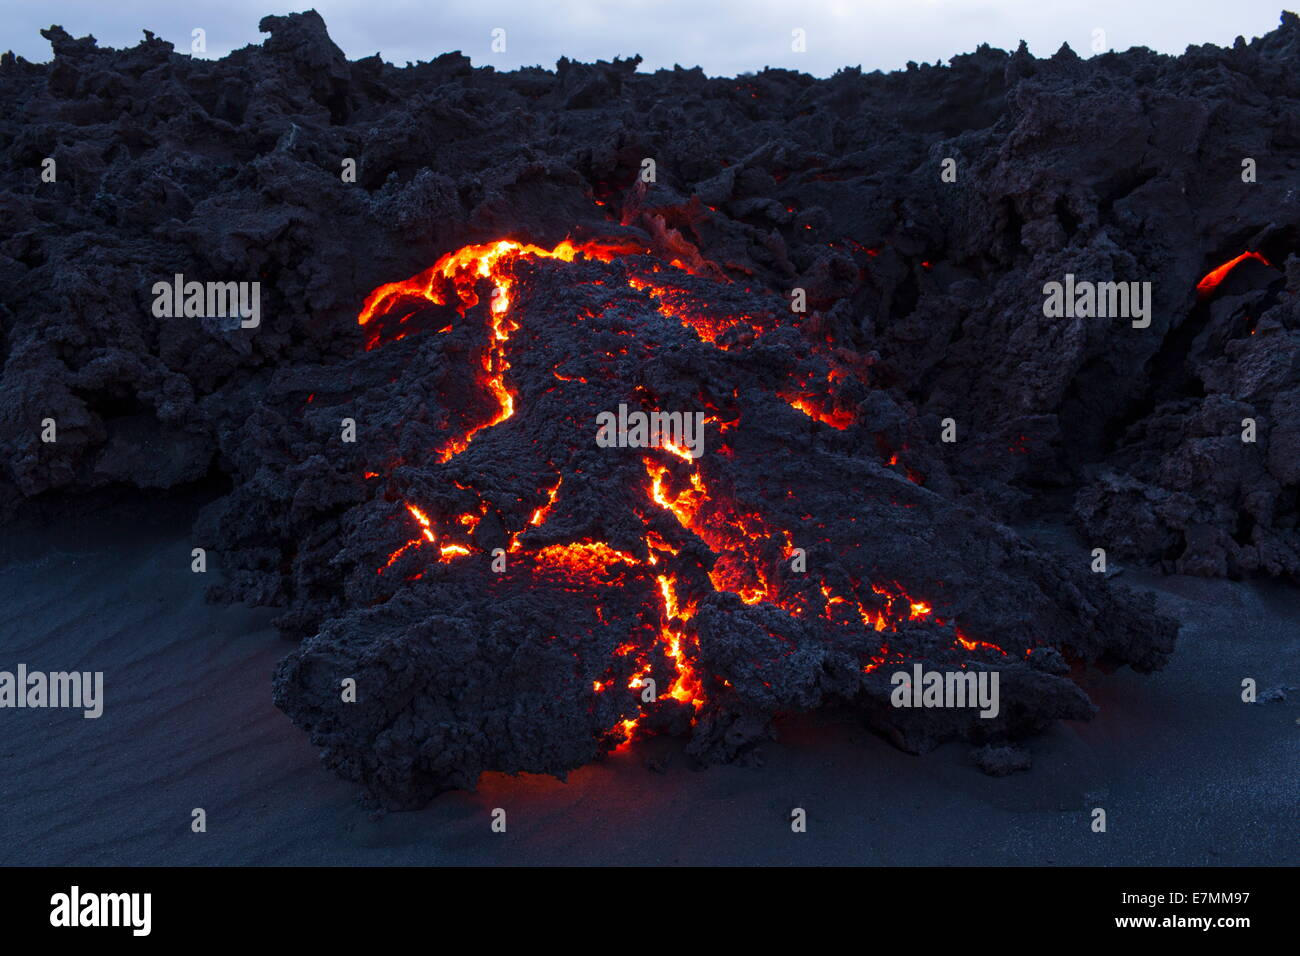 New and burning hot lava from the eruption in Bardarbunga, highlands of Iceland - Stock Image